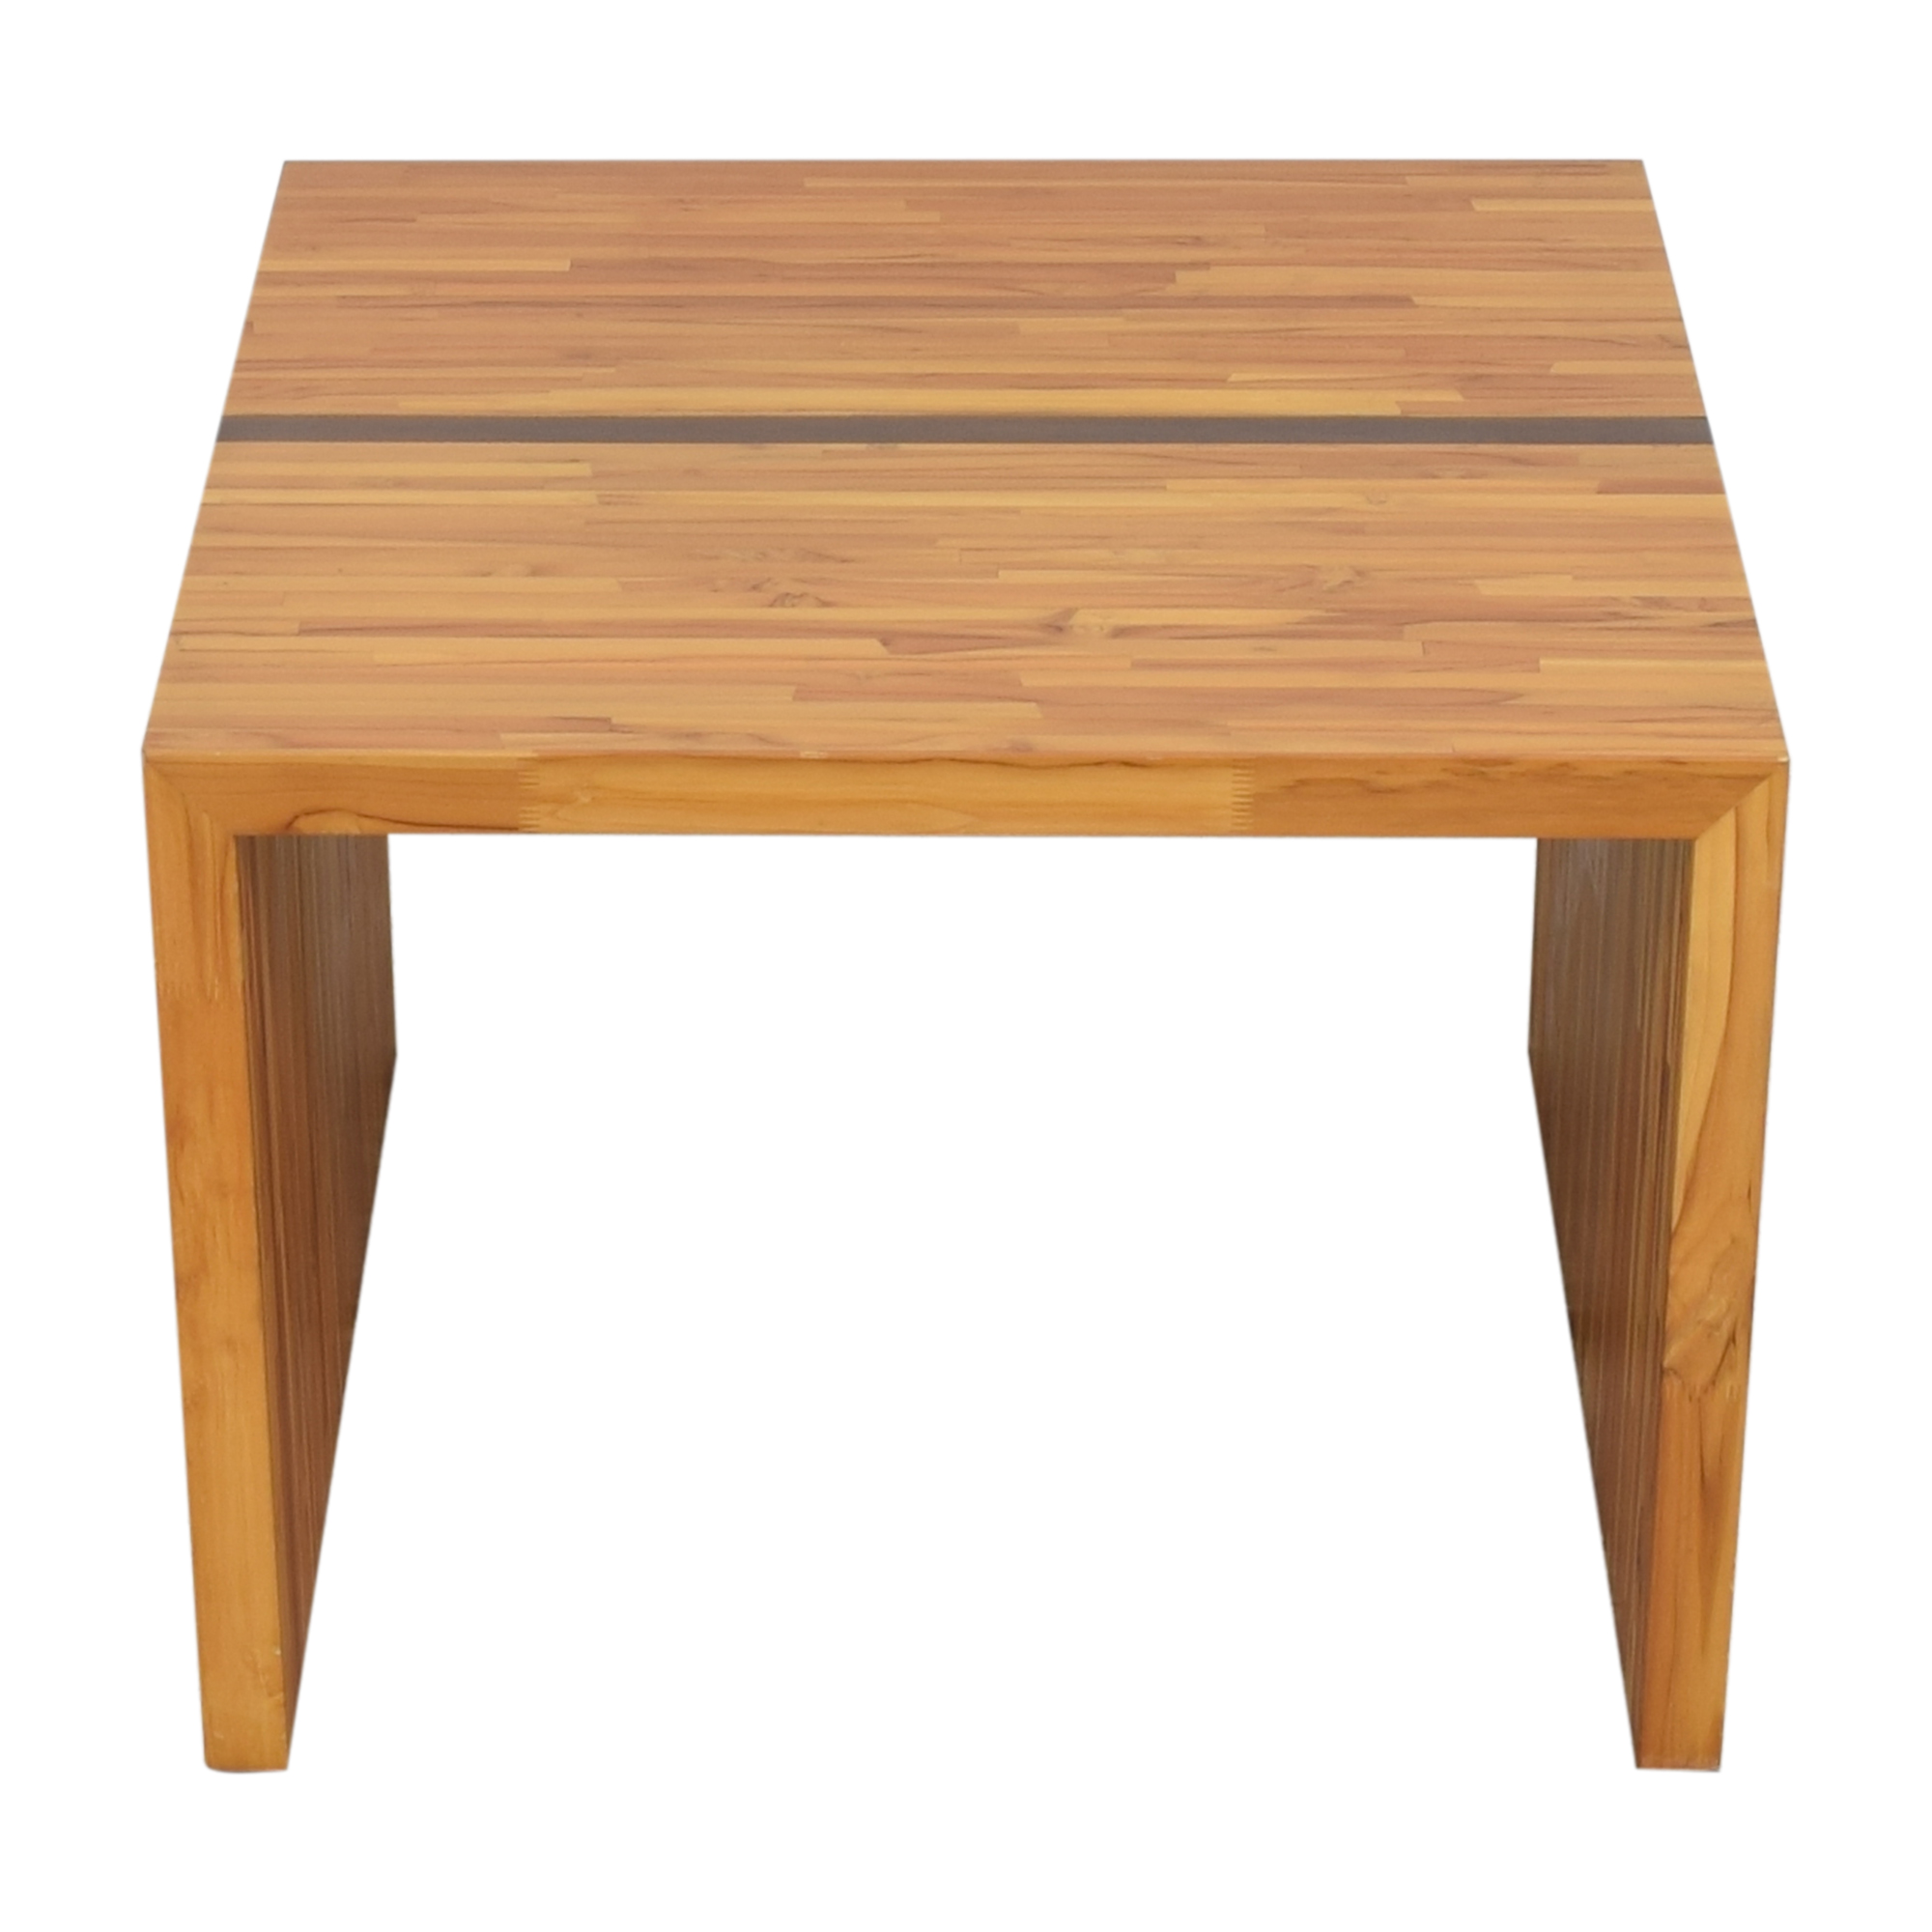 Inlaid End Table for sale